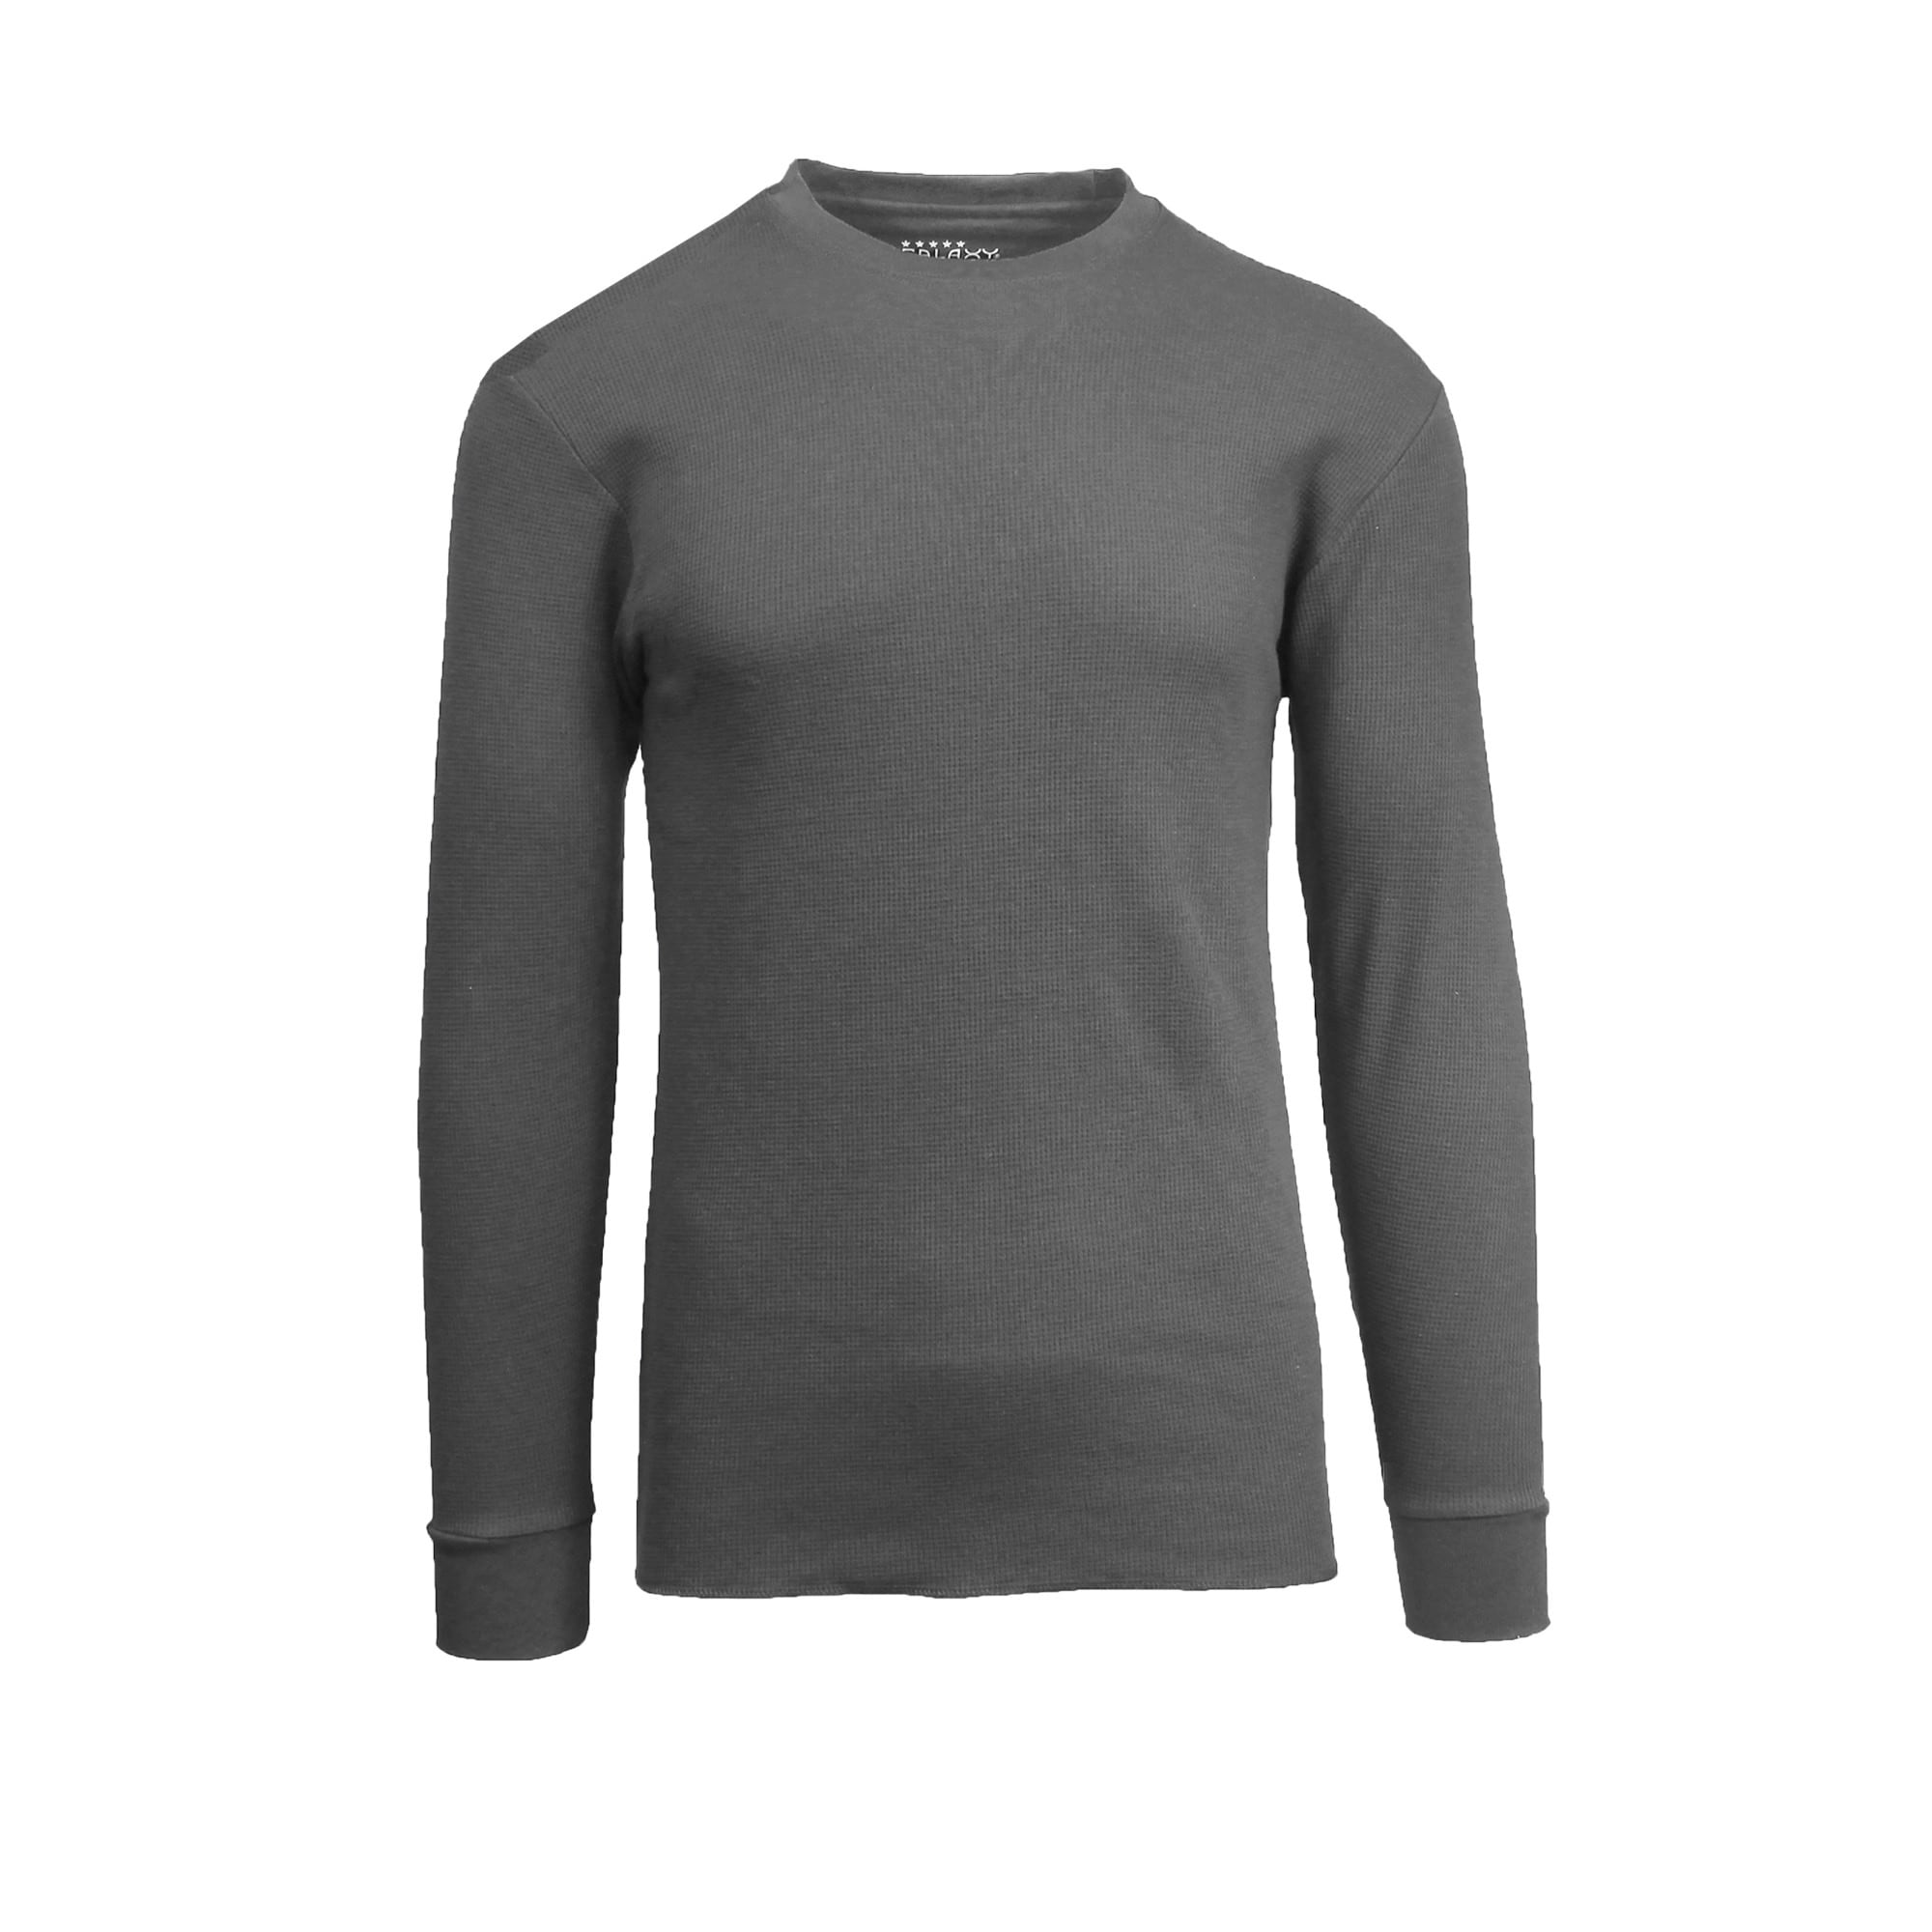 8bebab16 Shop Galaxy By Harvic Men's Long Sleeve Crew Neck Thermal Waffle Shirts -  On Sale - Free Shipping On Orders Over $45 - Overstock - 19400642